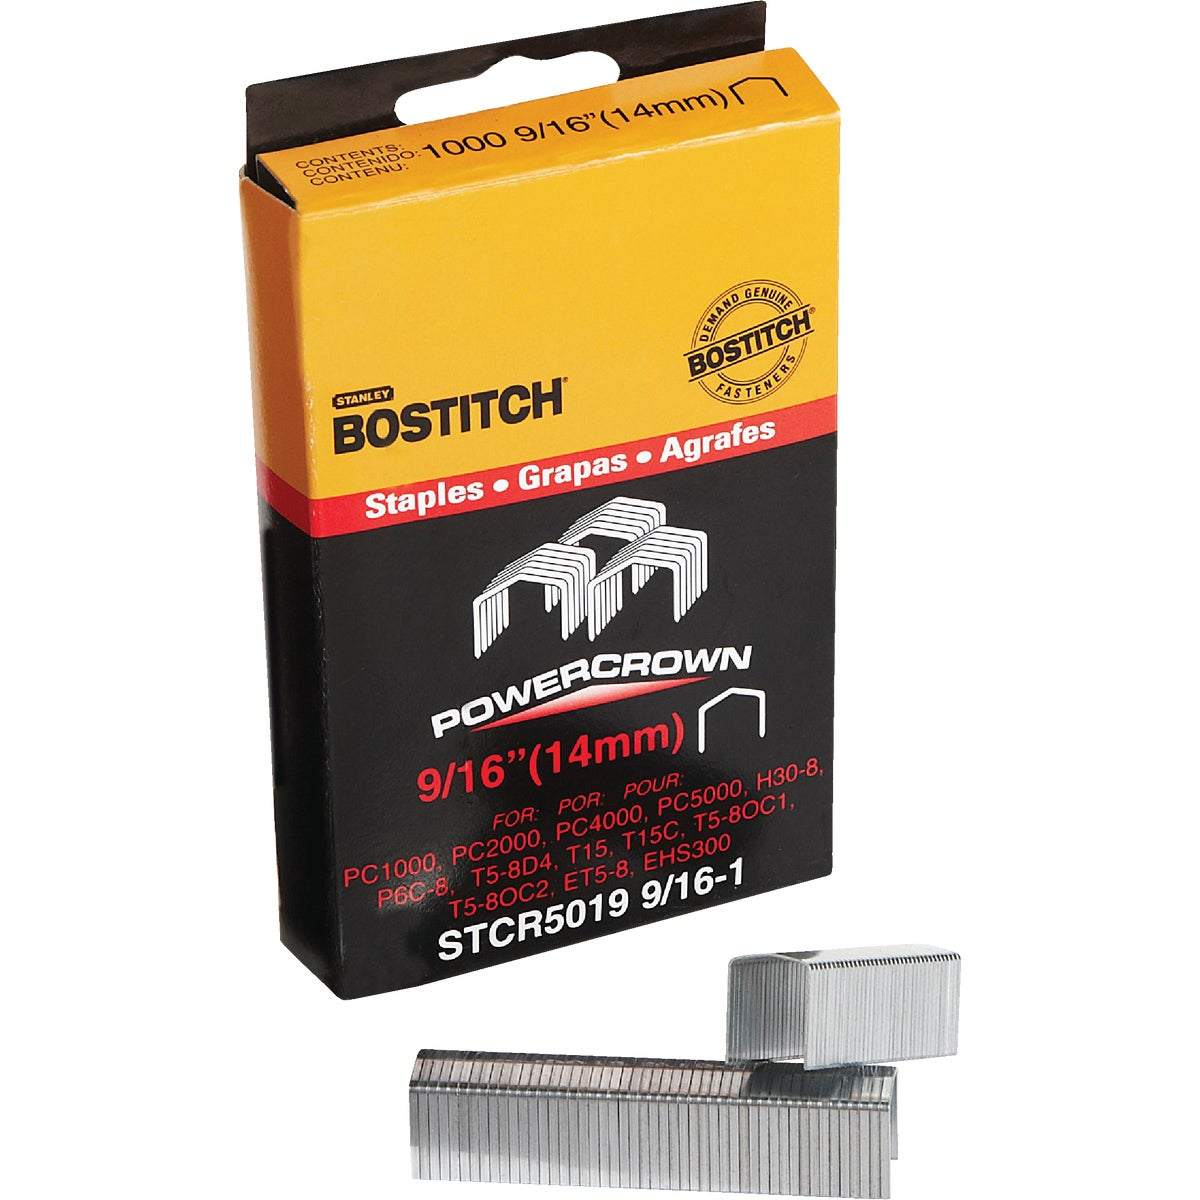 "9/16"" STAPLE - STCR50199/16-1 by Stanley Bostitch"